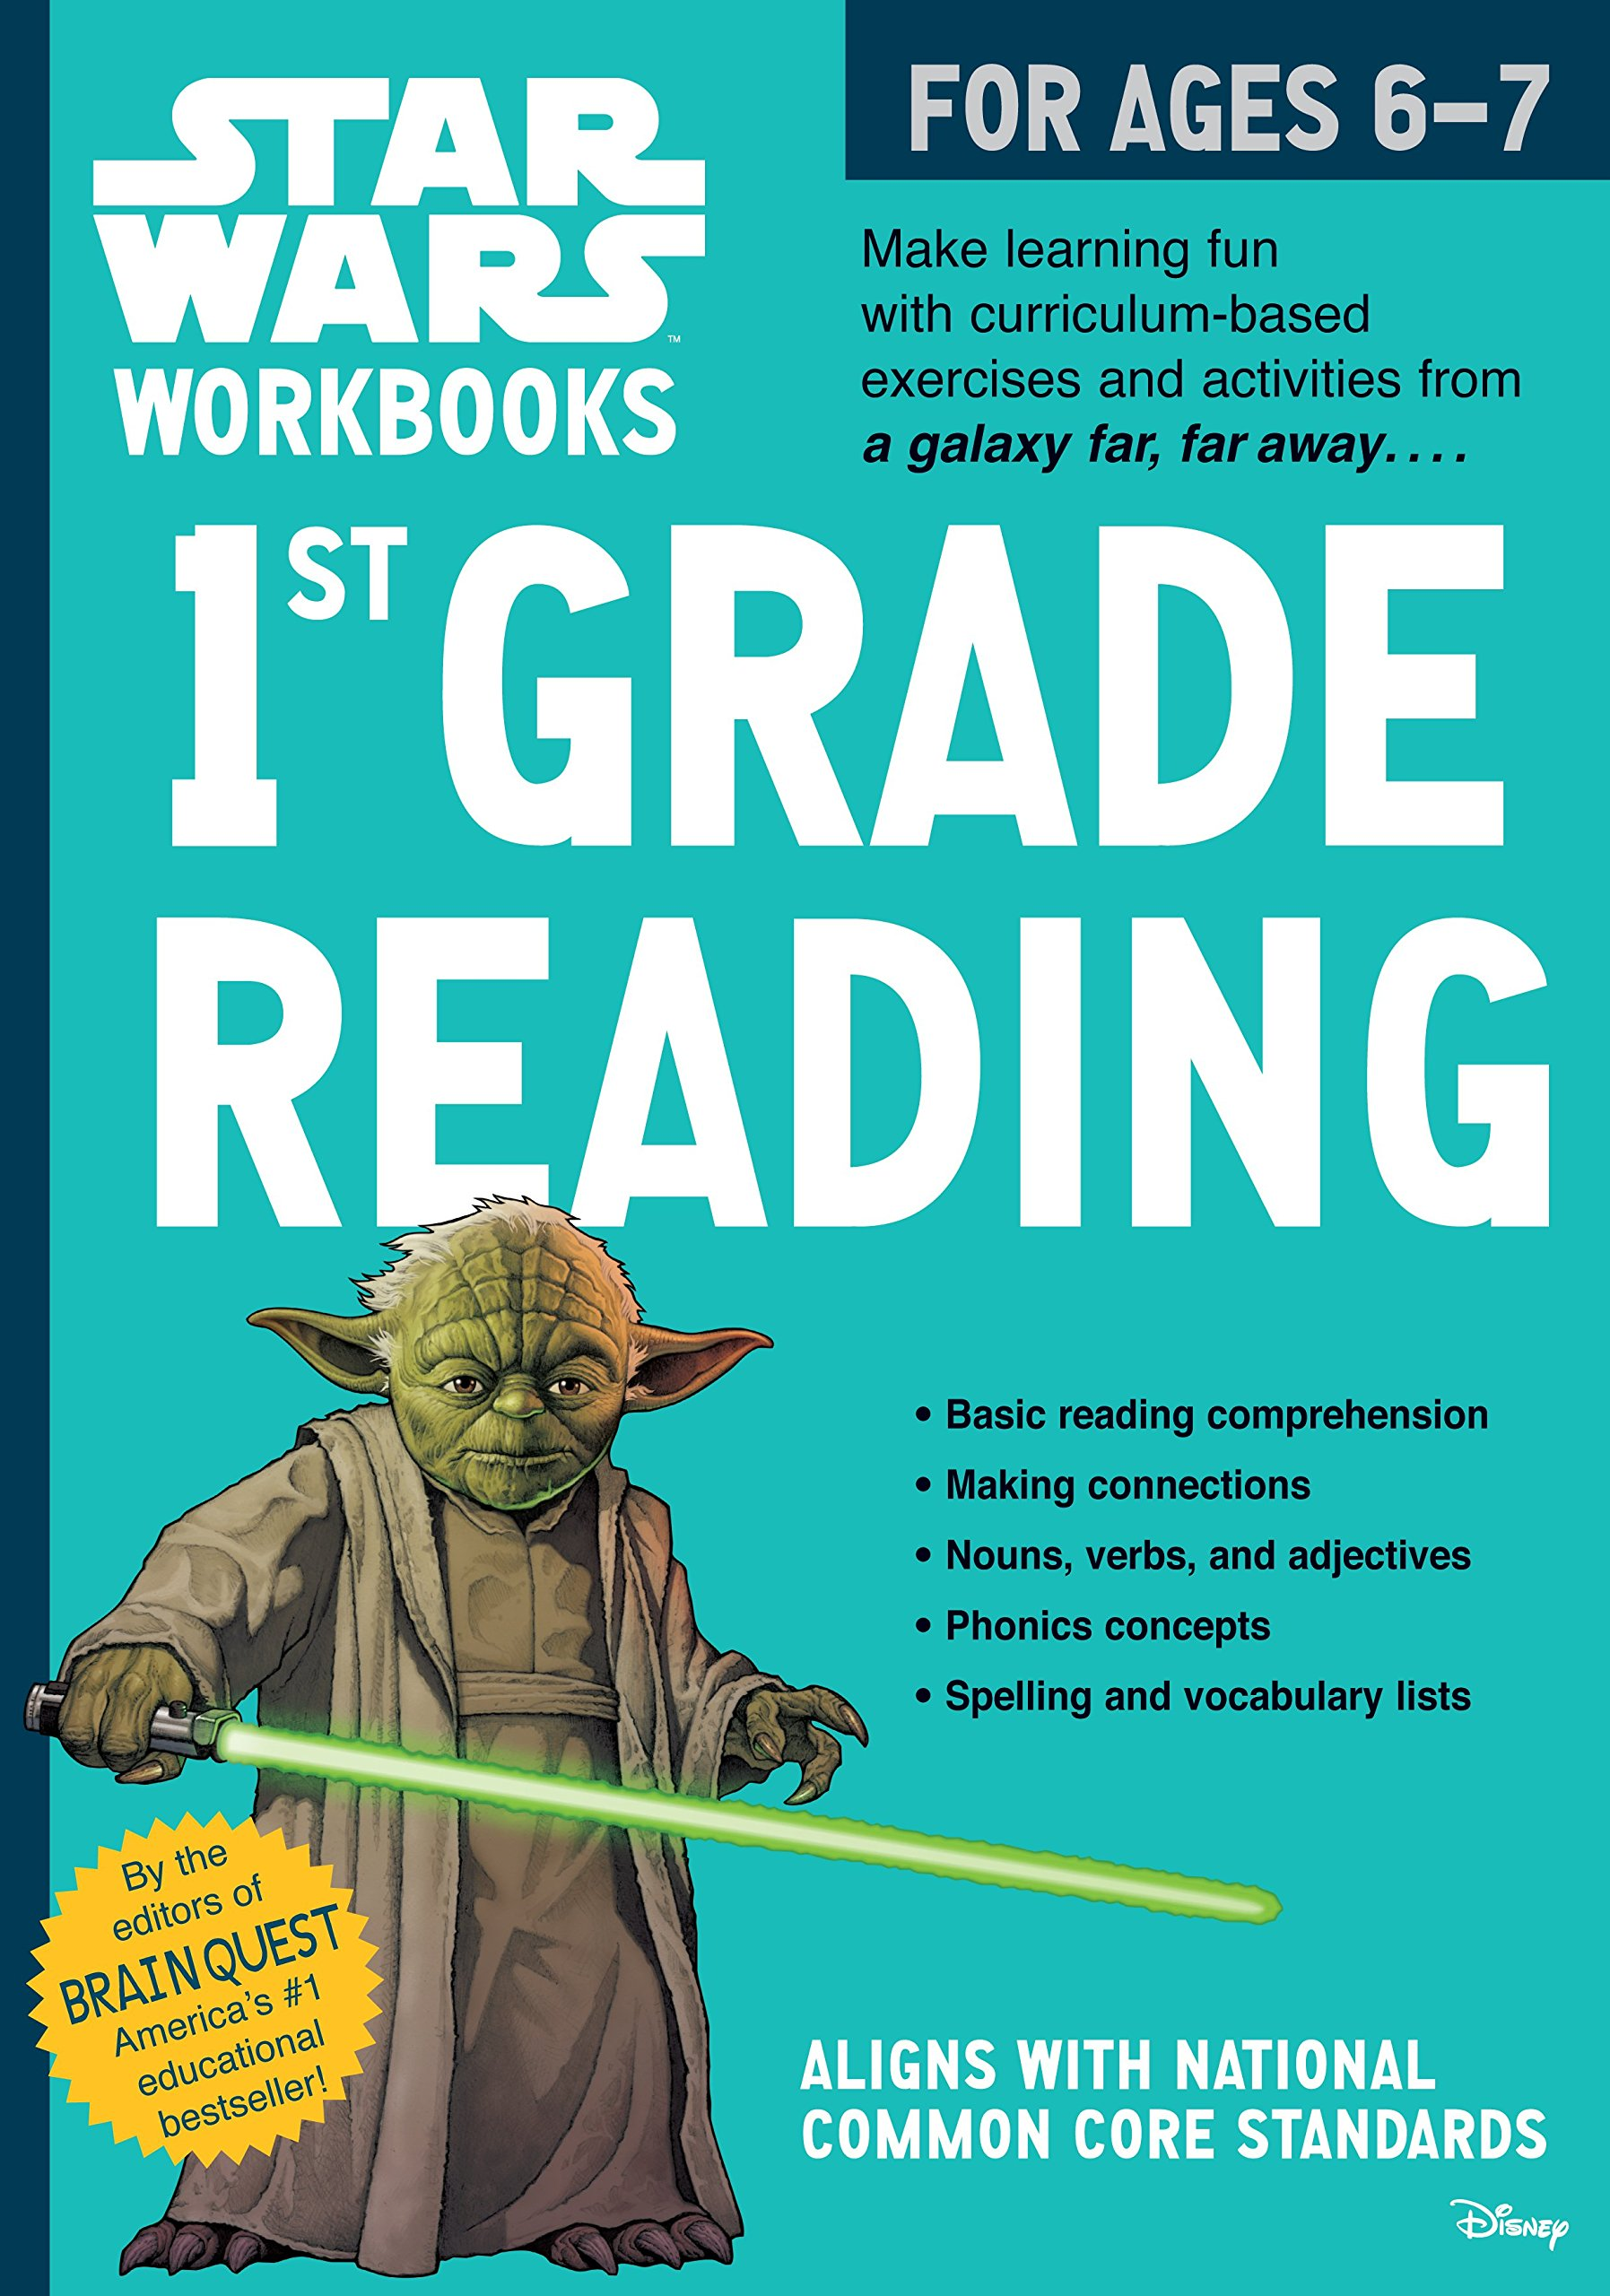 Star Wars Workbook: 1st Grade Reading (Star Wars Workbooks): Workman ...